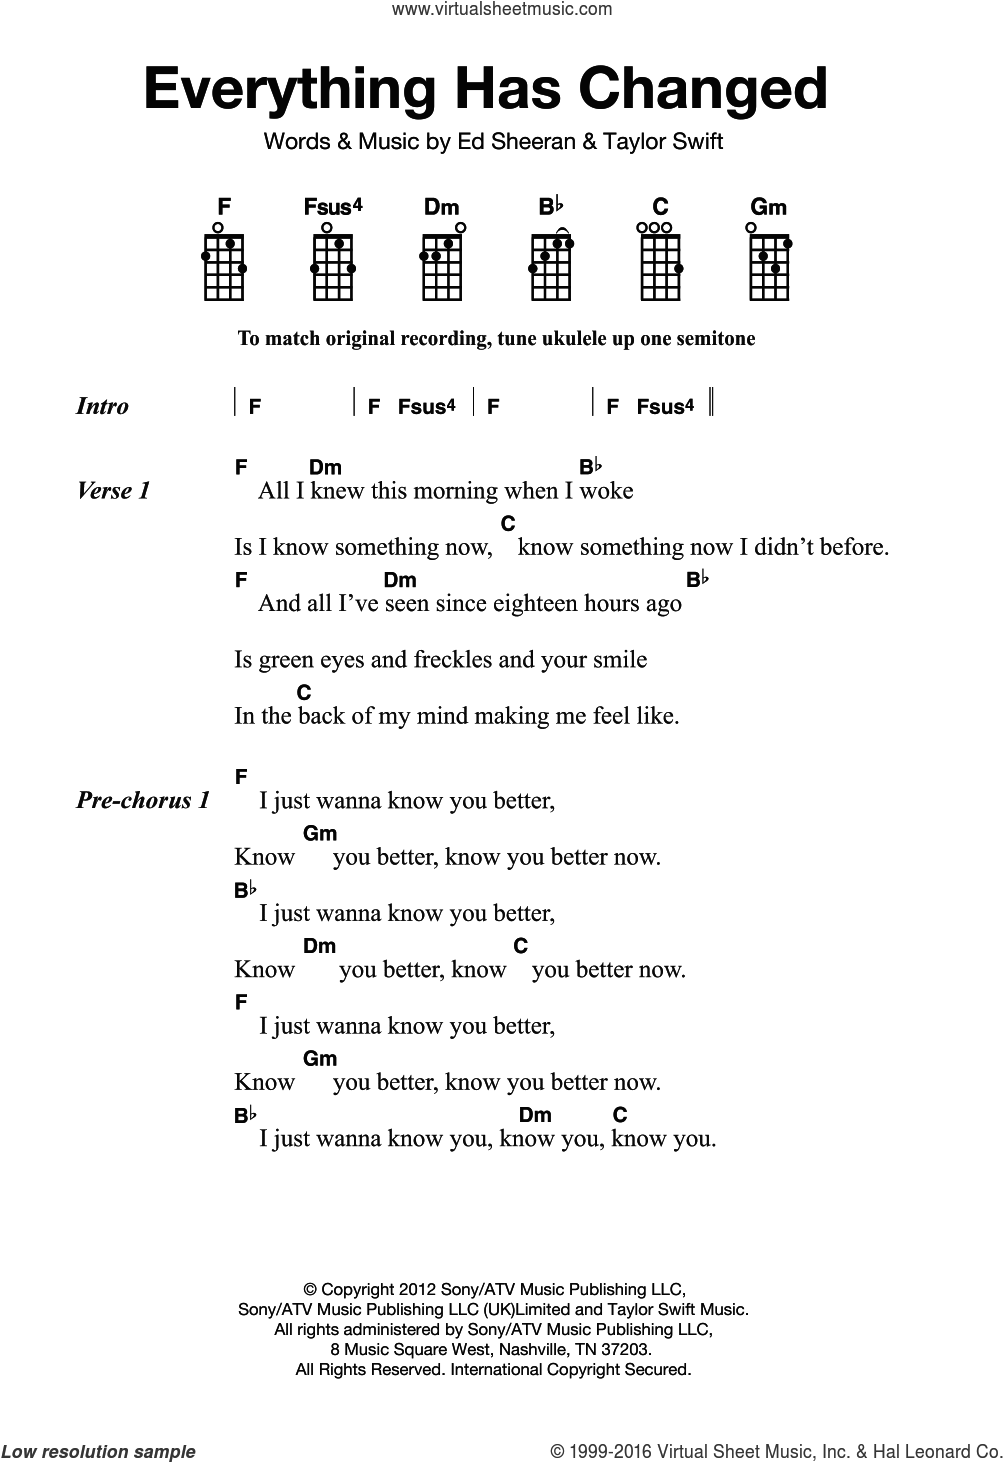 Everything Has Changed sheet music for ukulele by Taylor Swift and Ed Sheeran. Score Image Preview.